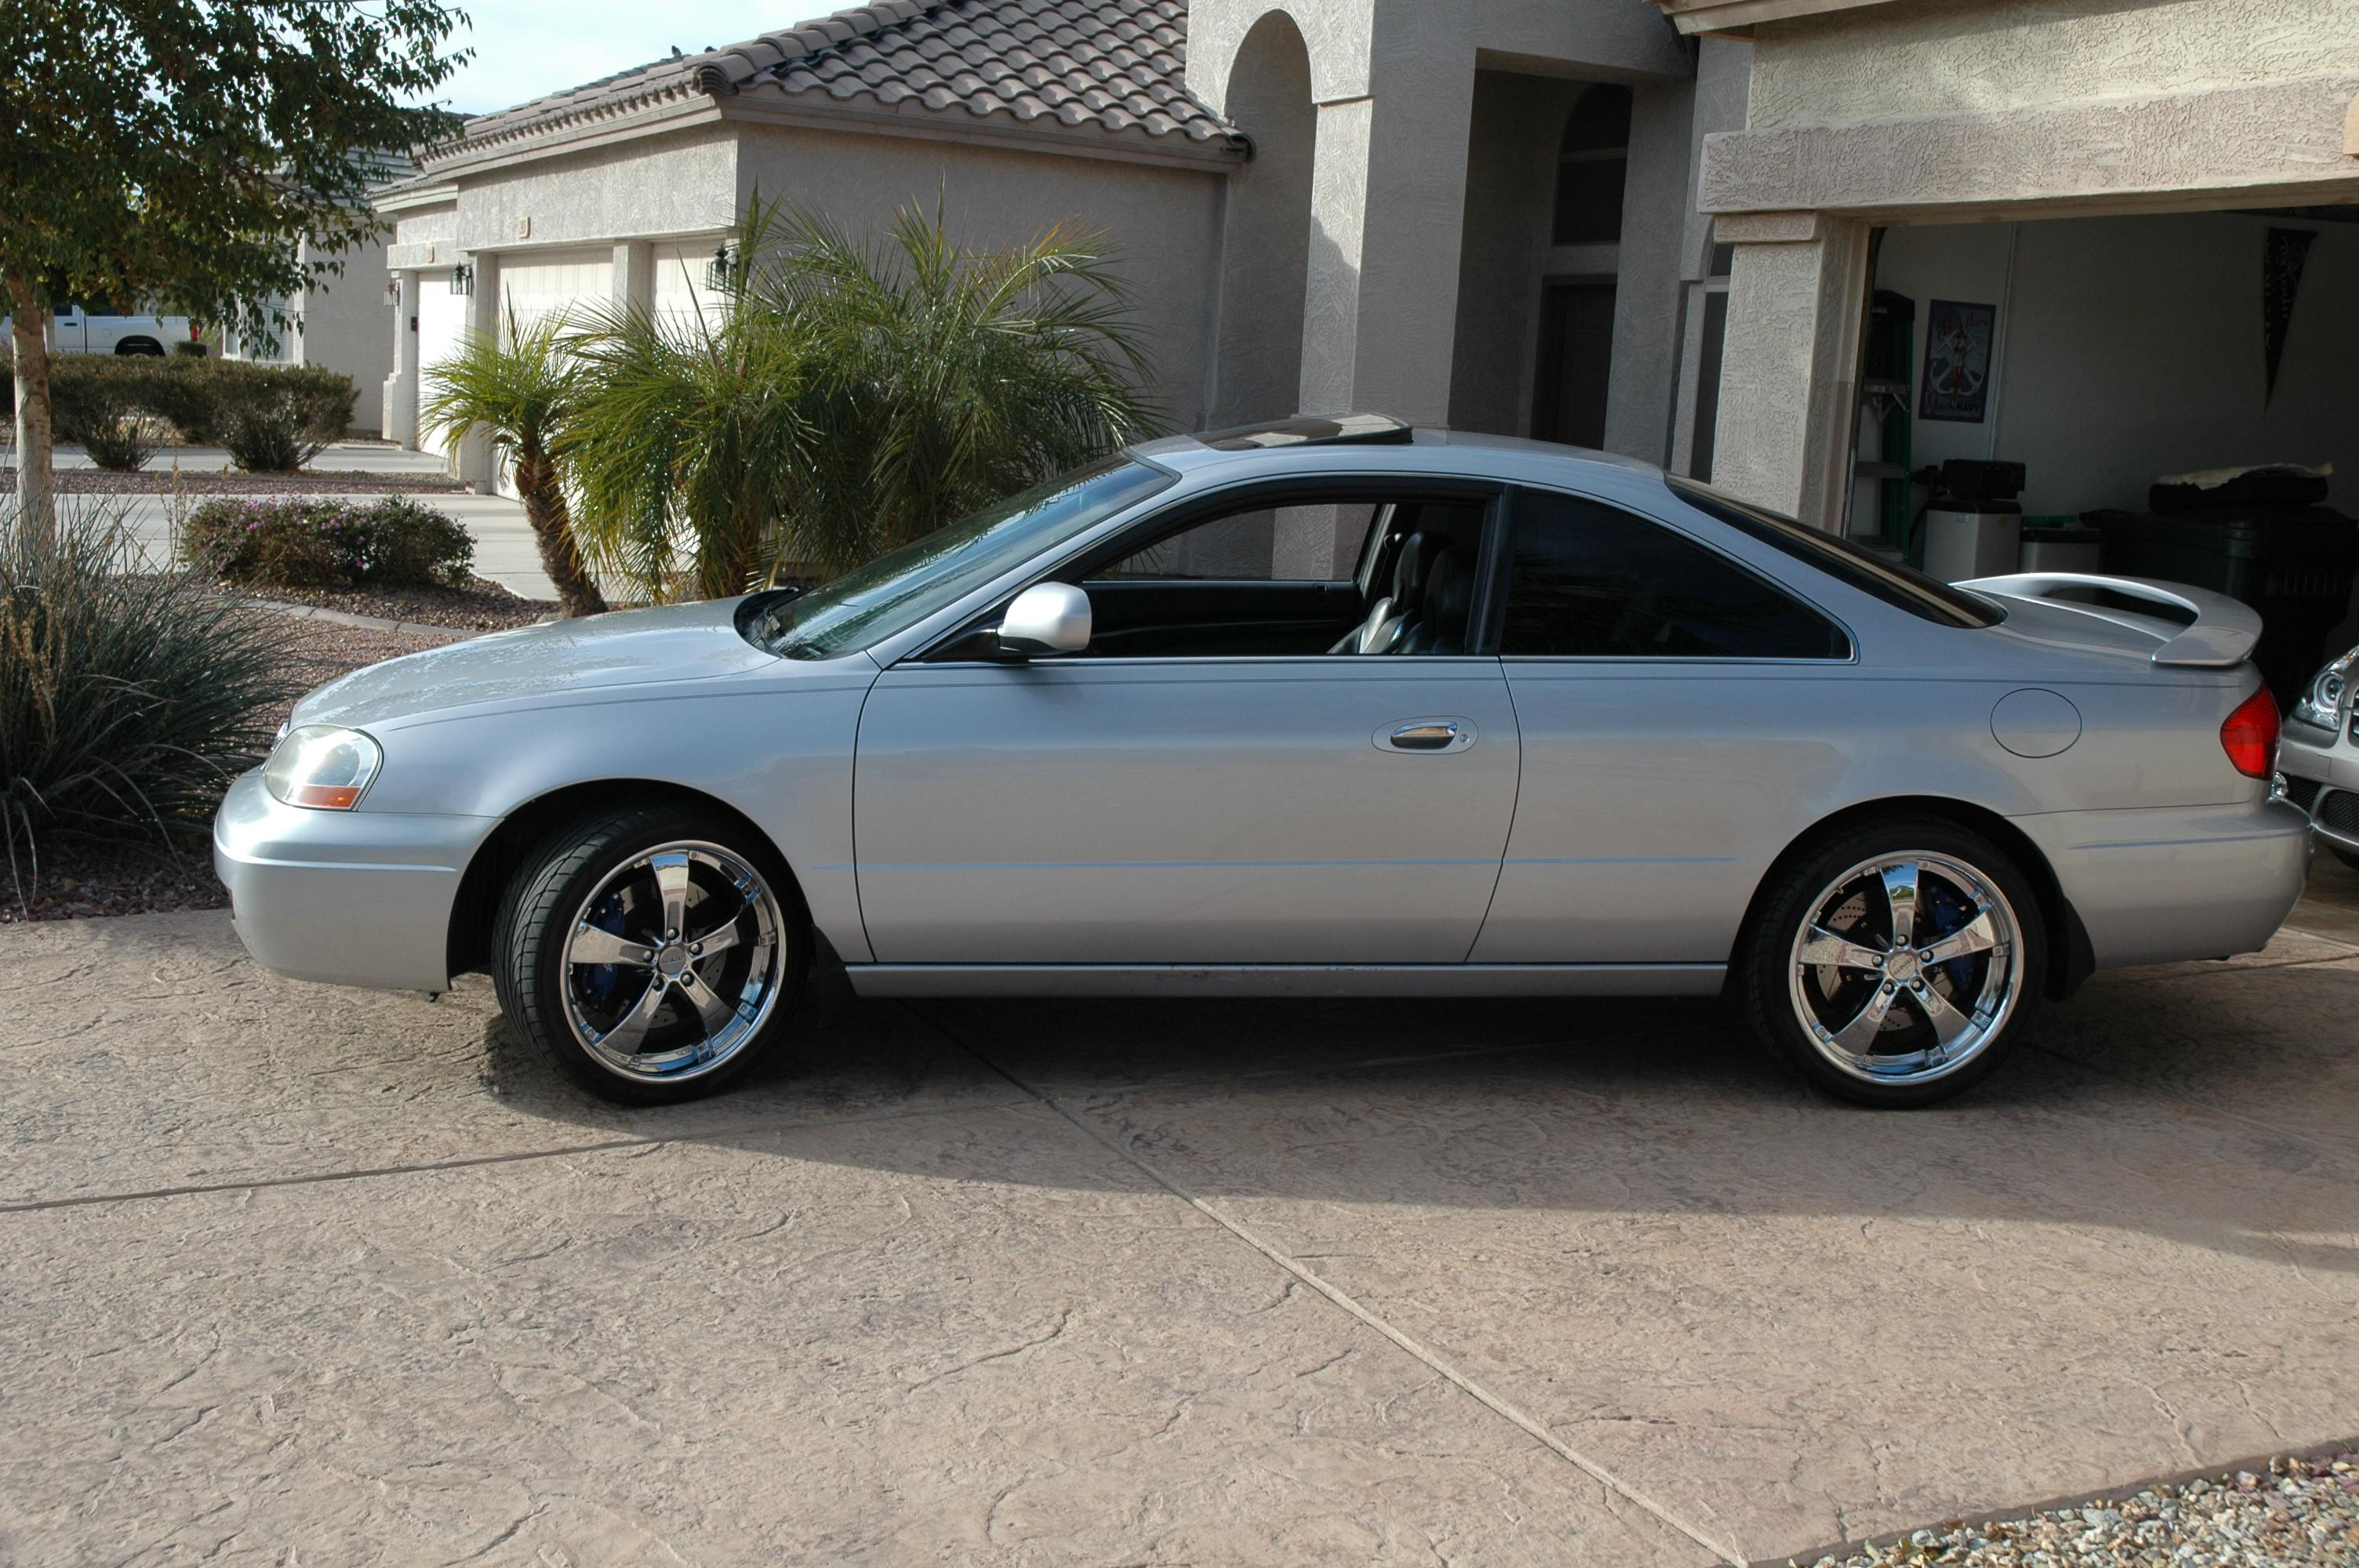 kiyomat 2001 acura cl3 2 type s coupe 2d 39 s photo gallery at cardomain. Black Bedroom Furniture Sets. Home Design Ideas